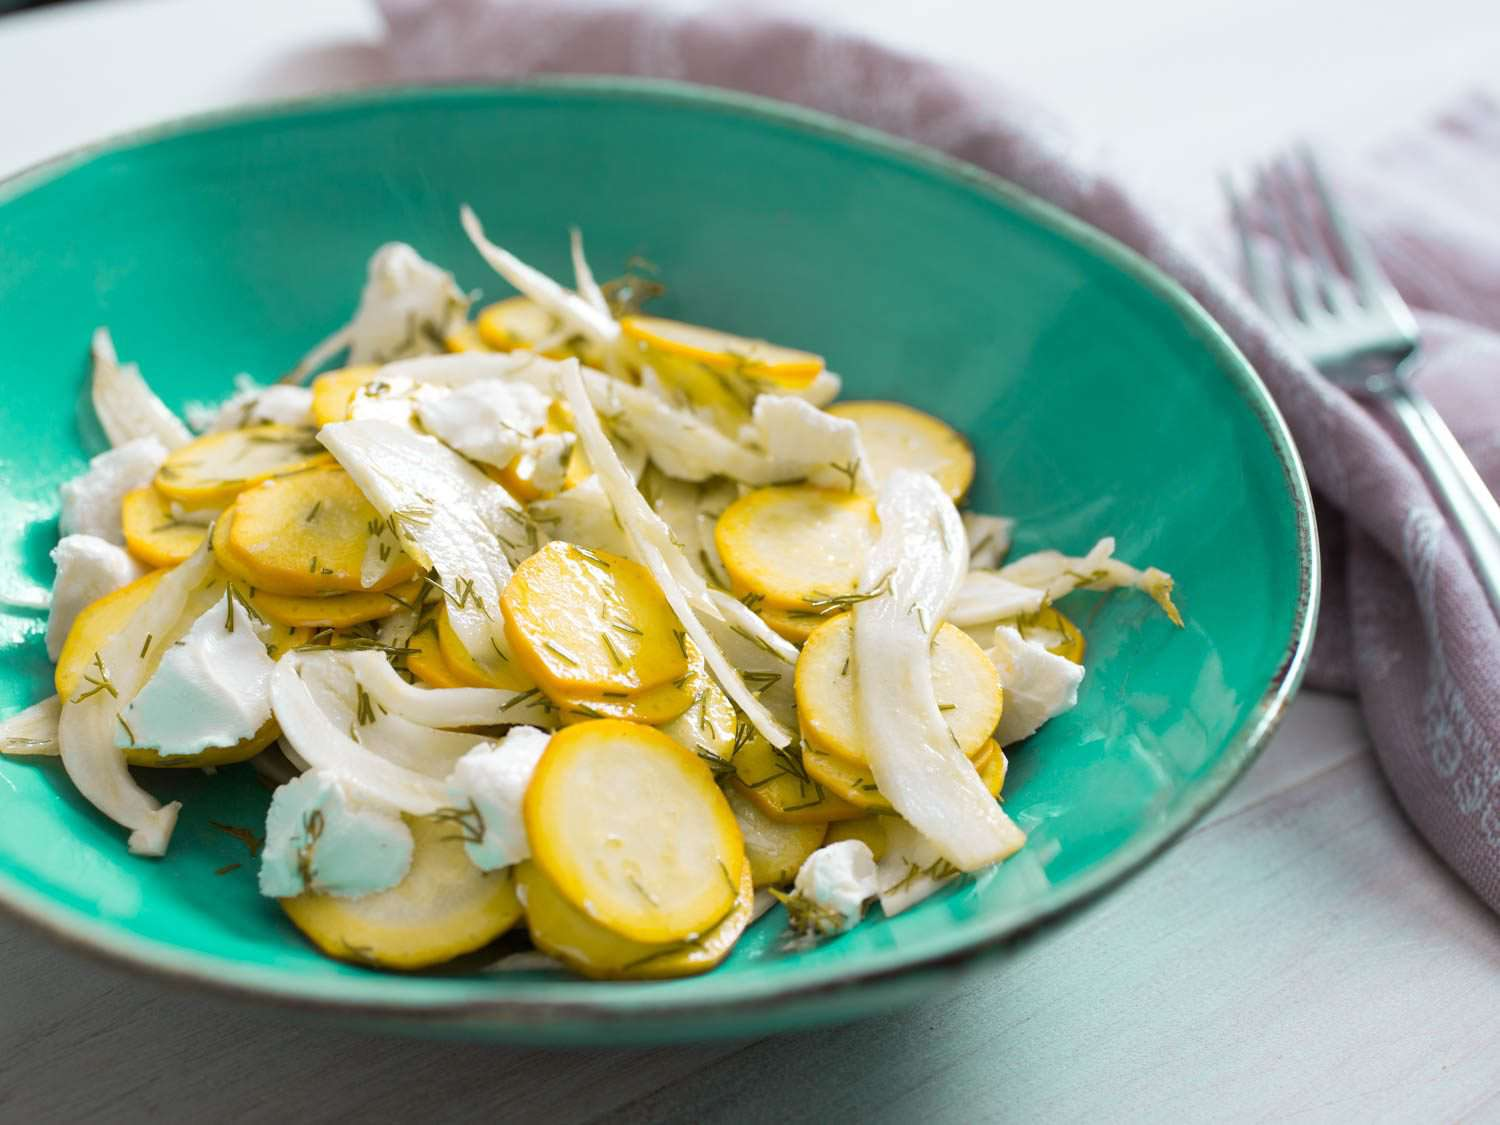 A ceramic dish of Summer Squash Salad With Goat Cheese, Fennel, and Dill